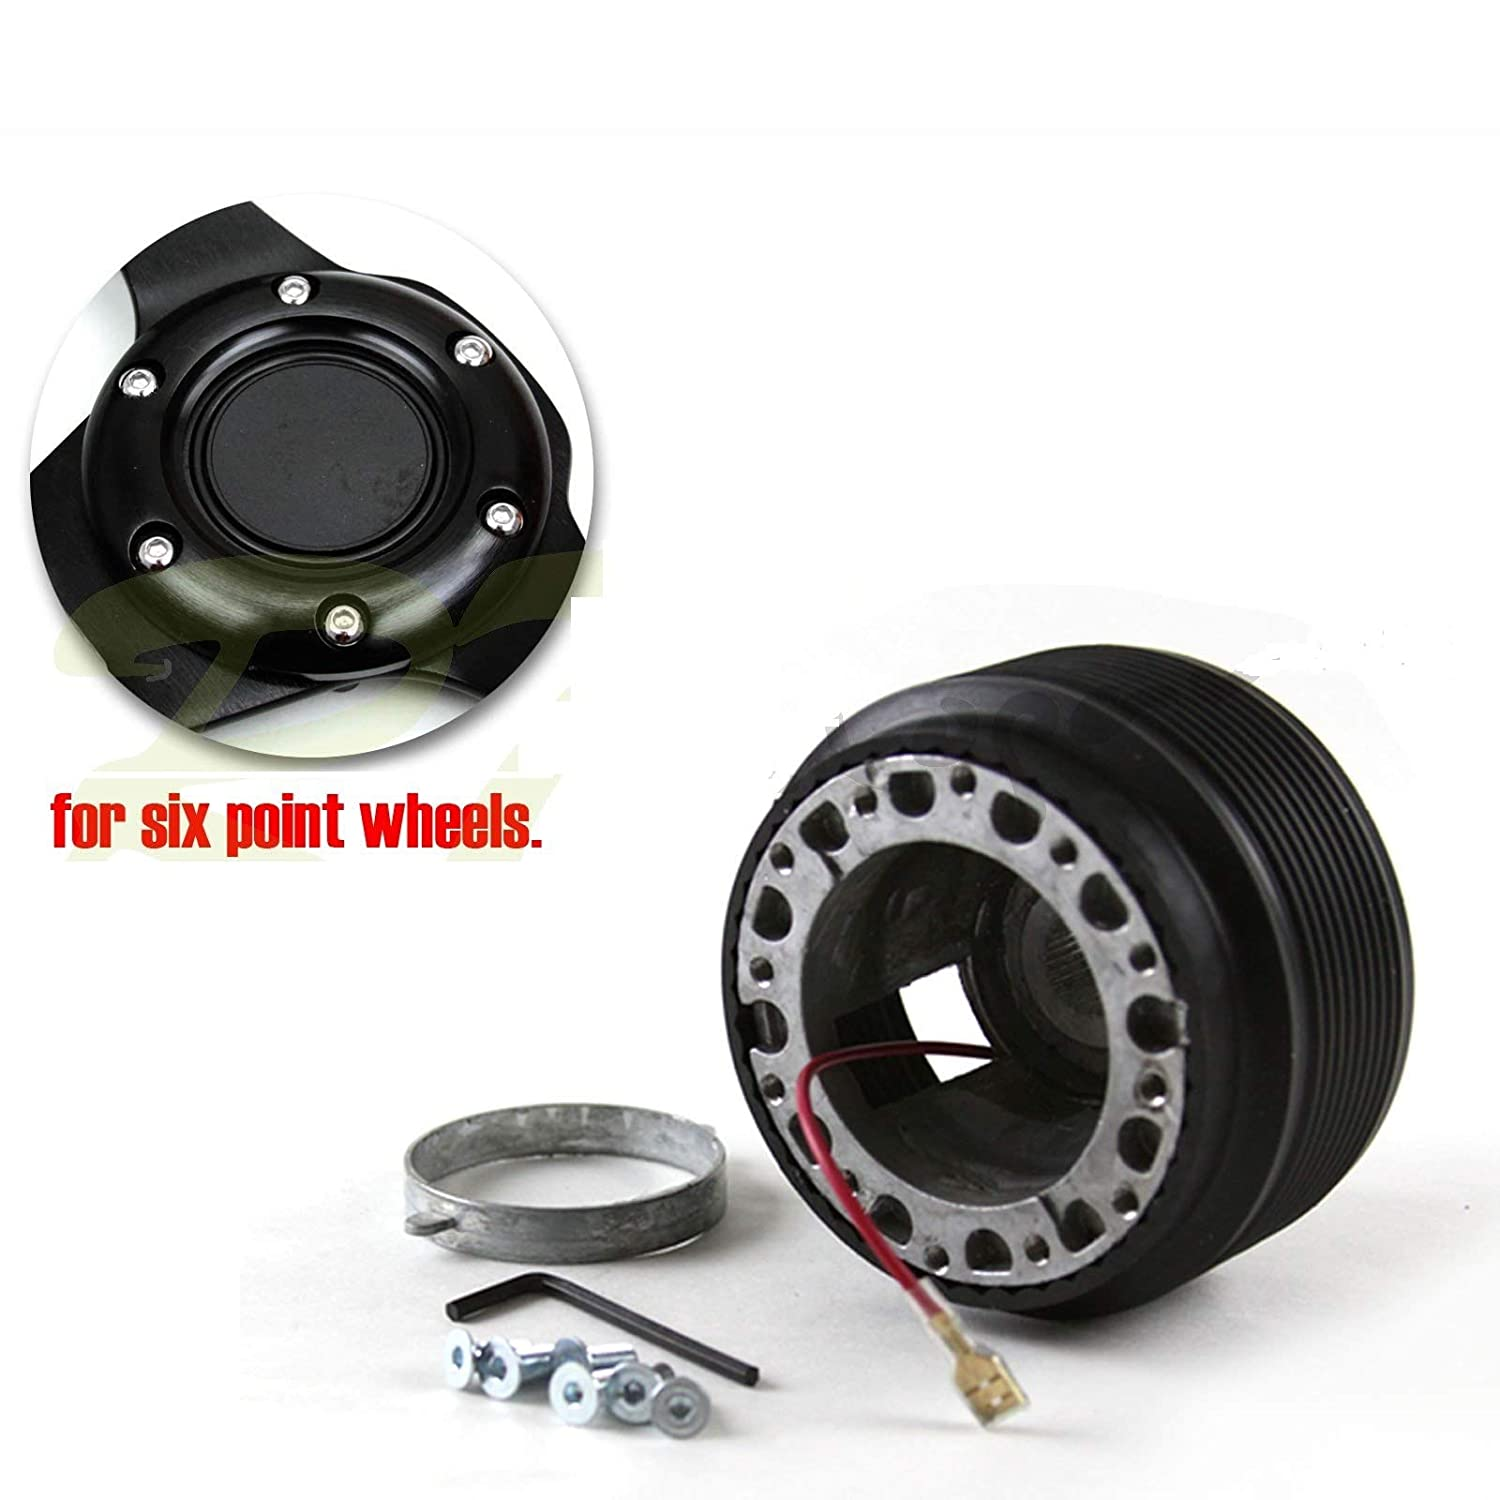 Innovativeparts for 87-95 Toyota Pickup and More 6-Bolt JDM Aftermarket Steering Wheel Hub Boss Adapter Kit